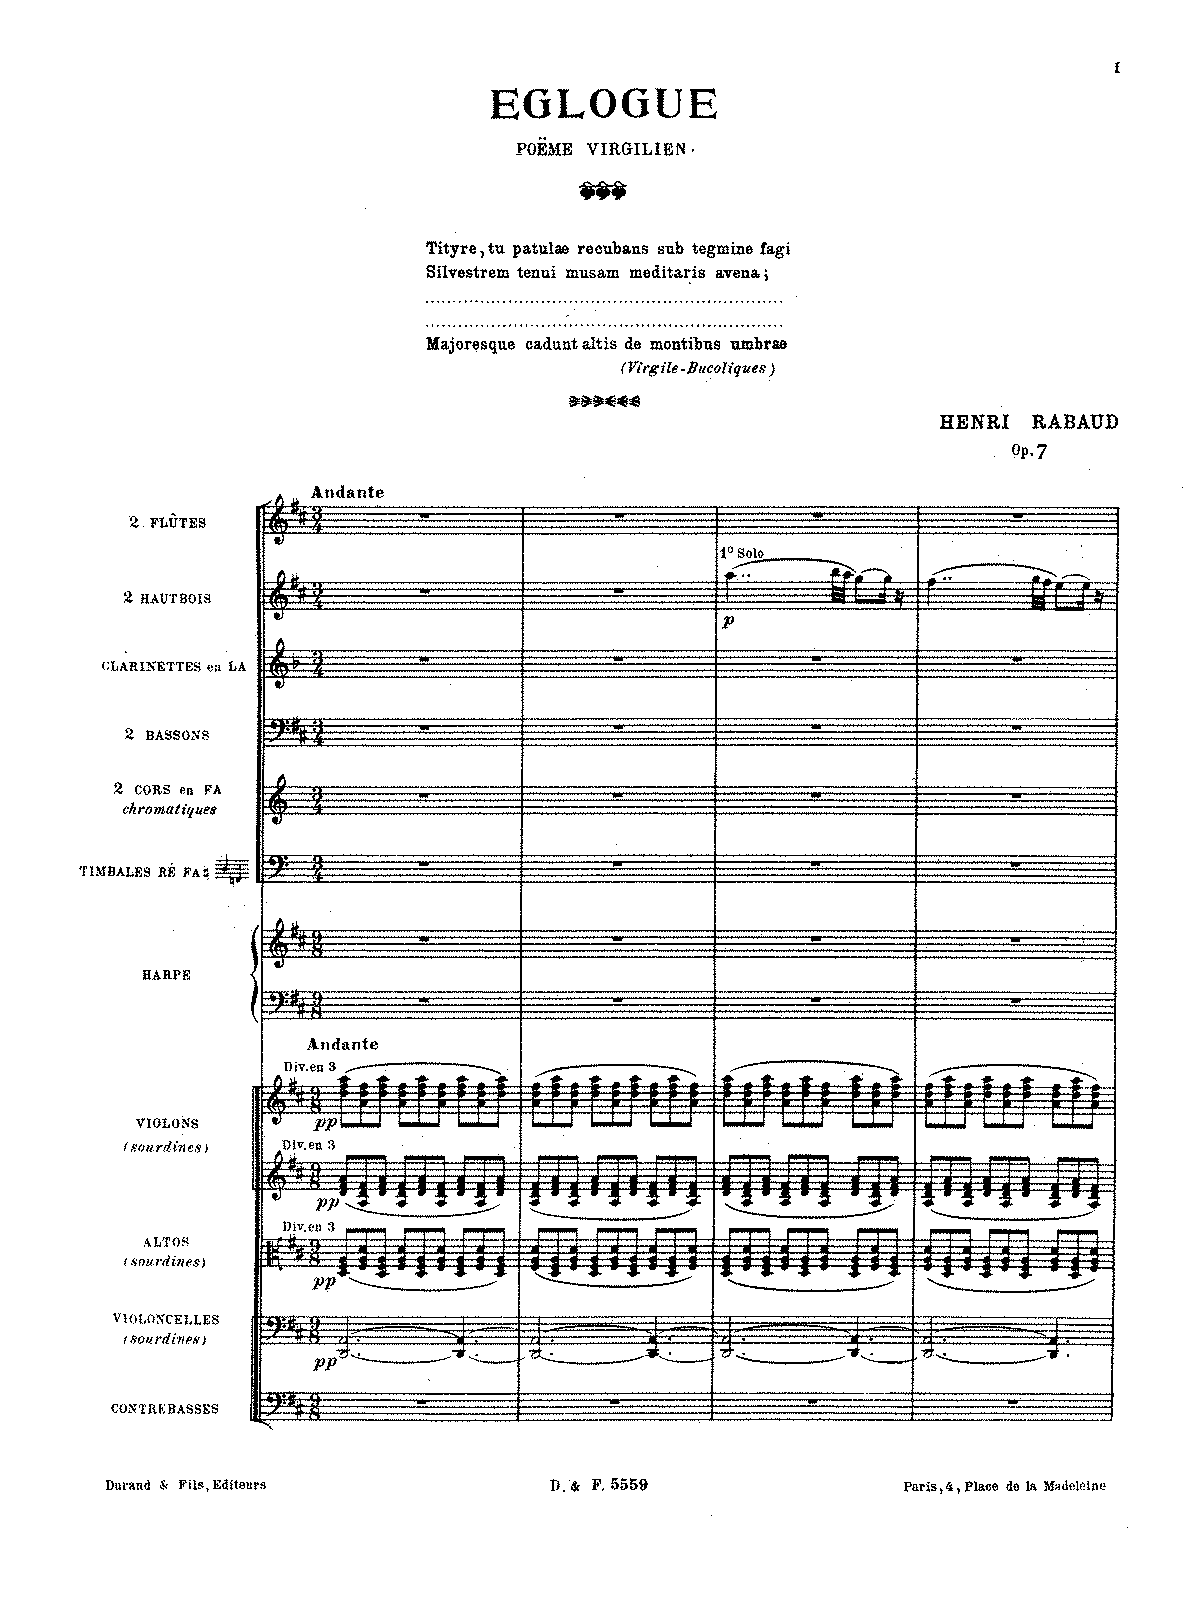 PMLP114737-Rabaud - Eglogue, Op. 7 (orch. score).pdf